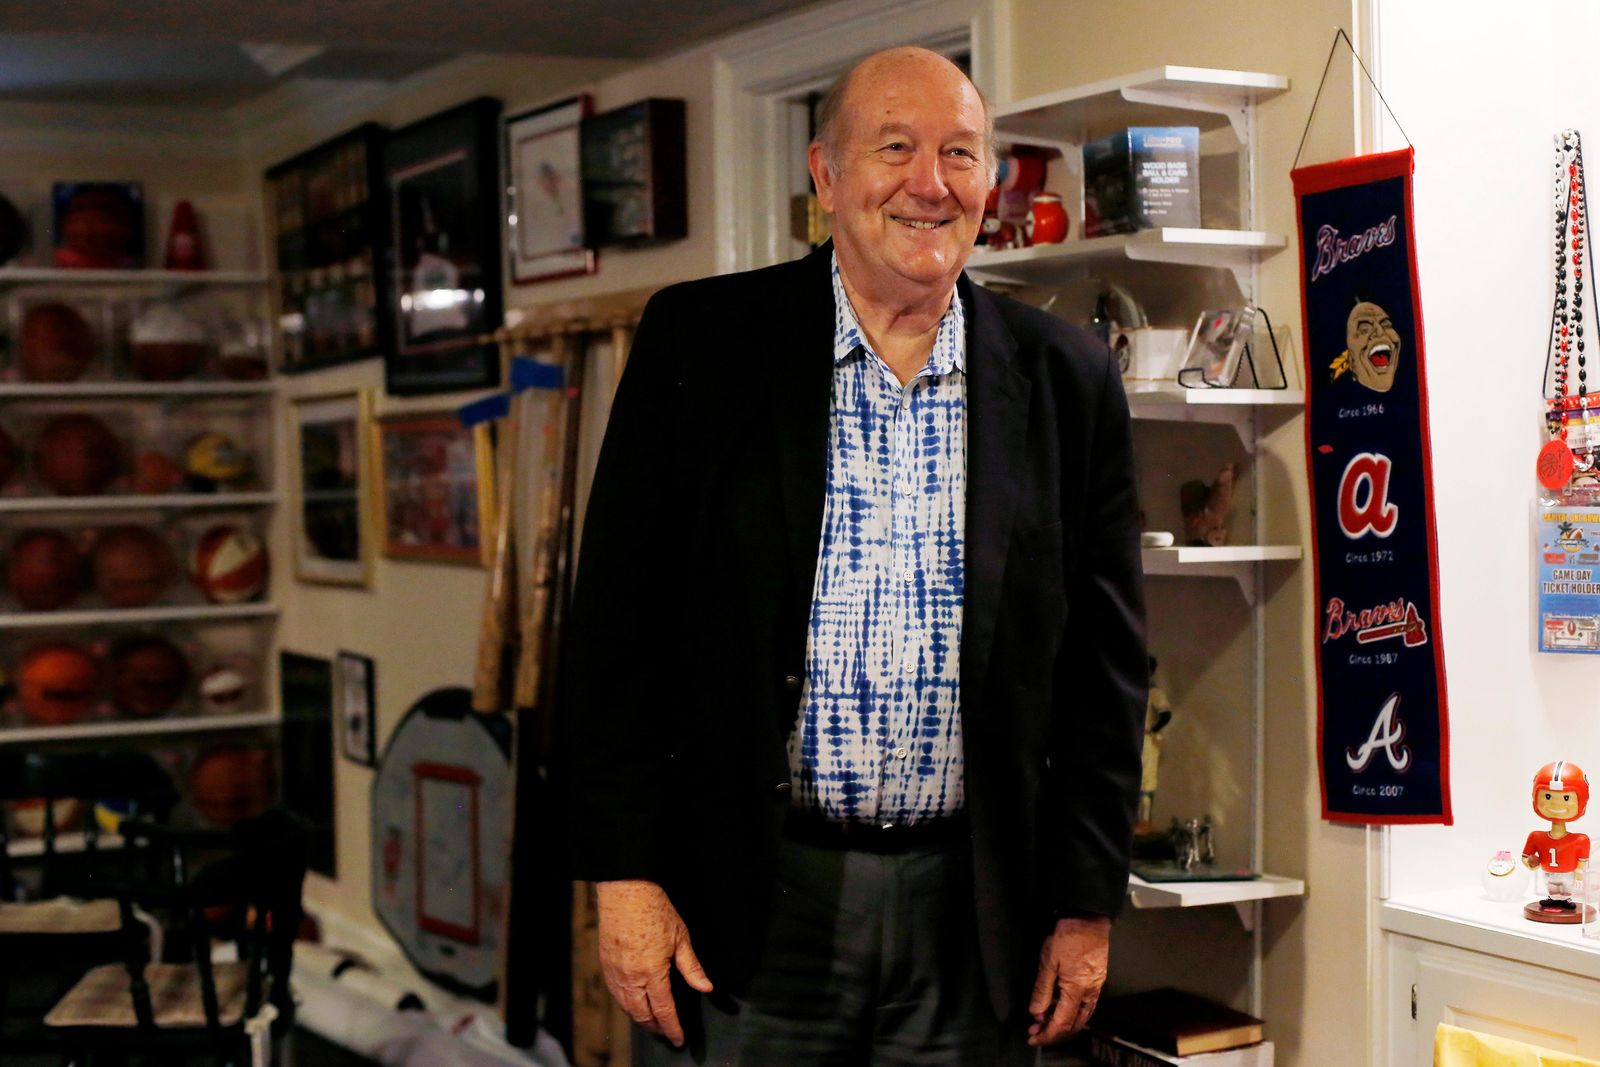 Bob Hope stands in the basement where his collection of sports memorabilia has been displayed for sale, Friday, Aug. 23, 2019, in Stone Mountain, Ga. (AP Photo/Andrea Smith)